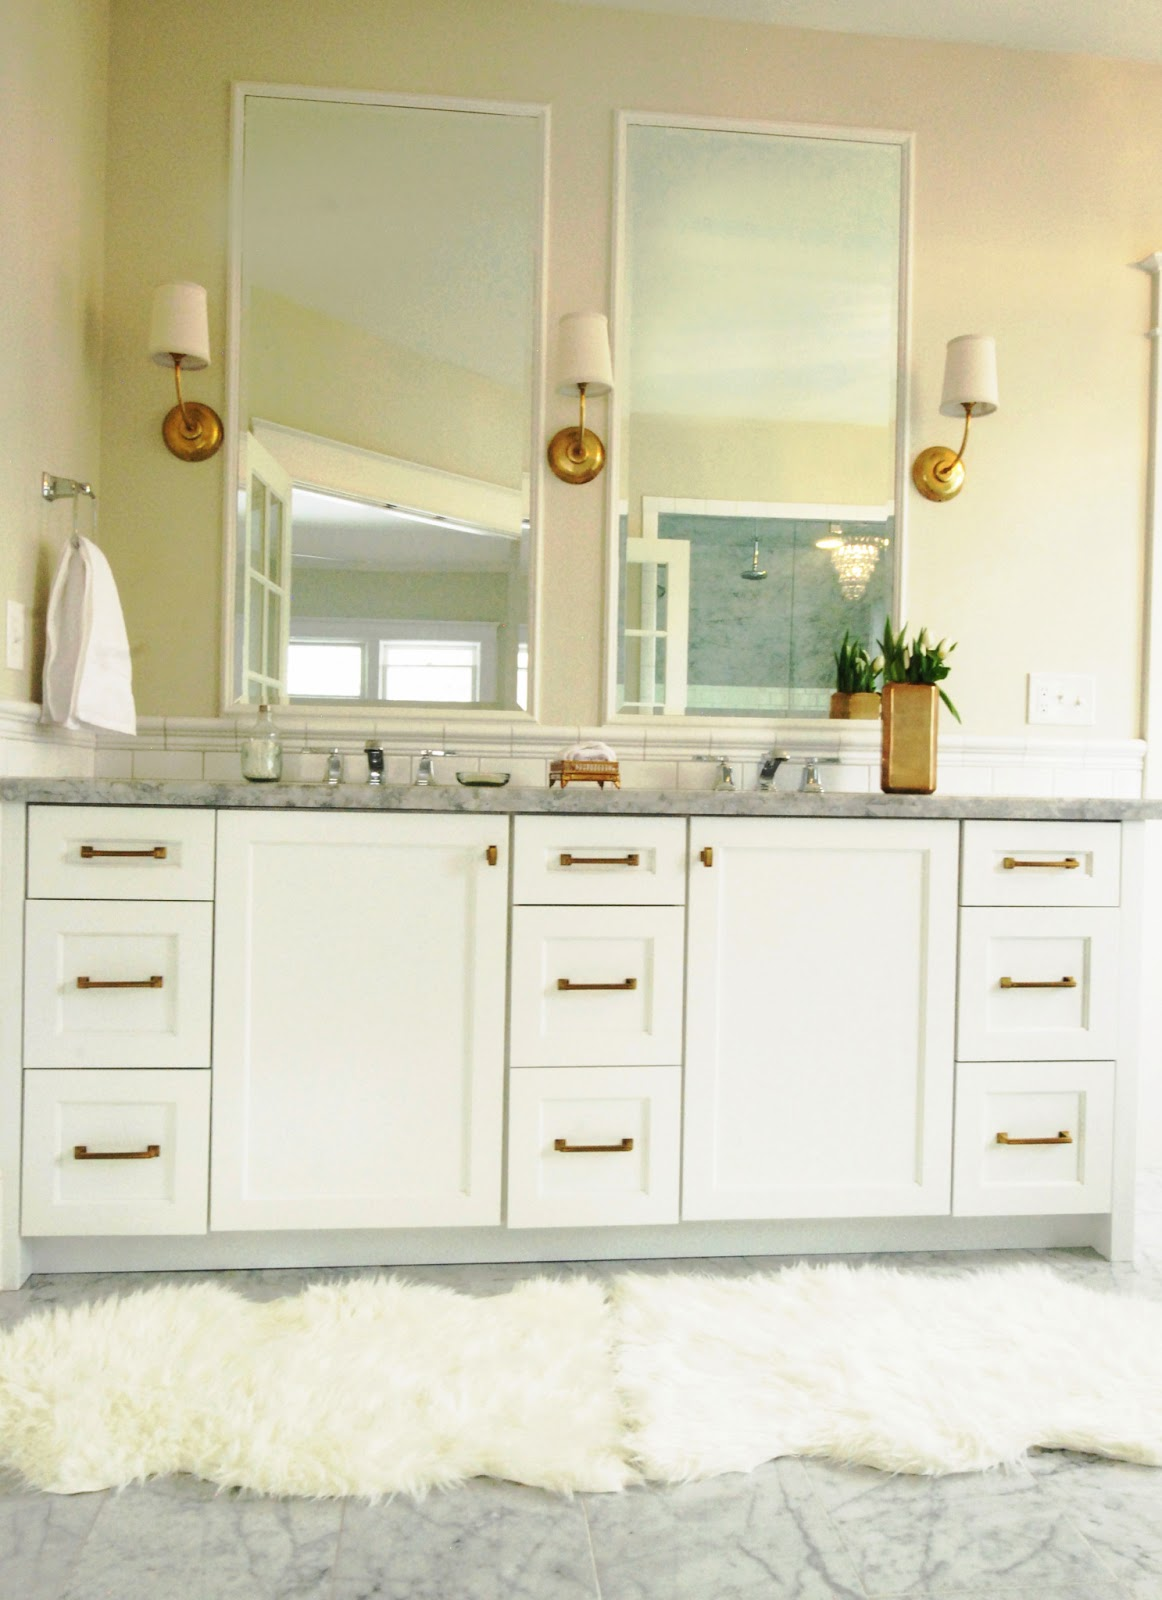 WHITE + GOLD: HOW TO MIX METALS - THE BATHROOM